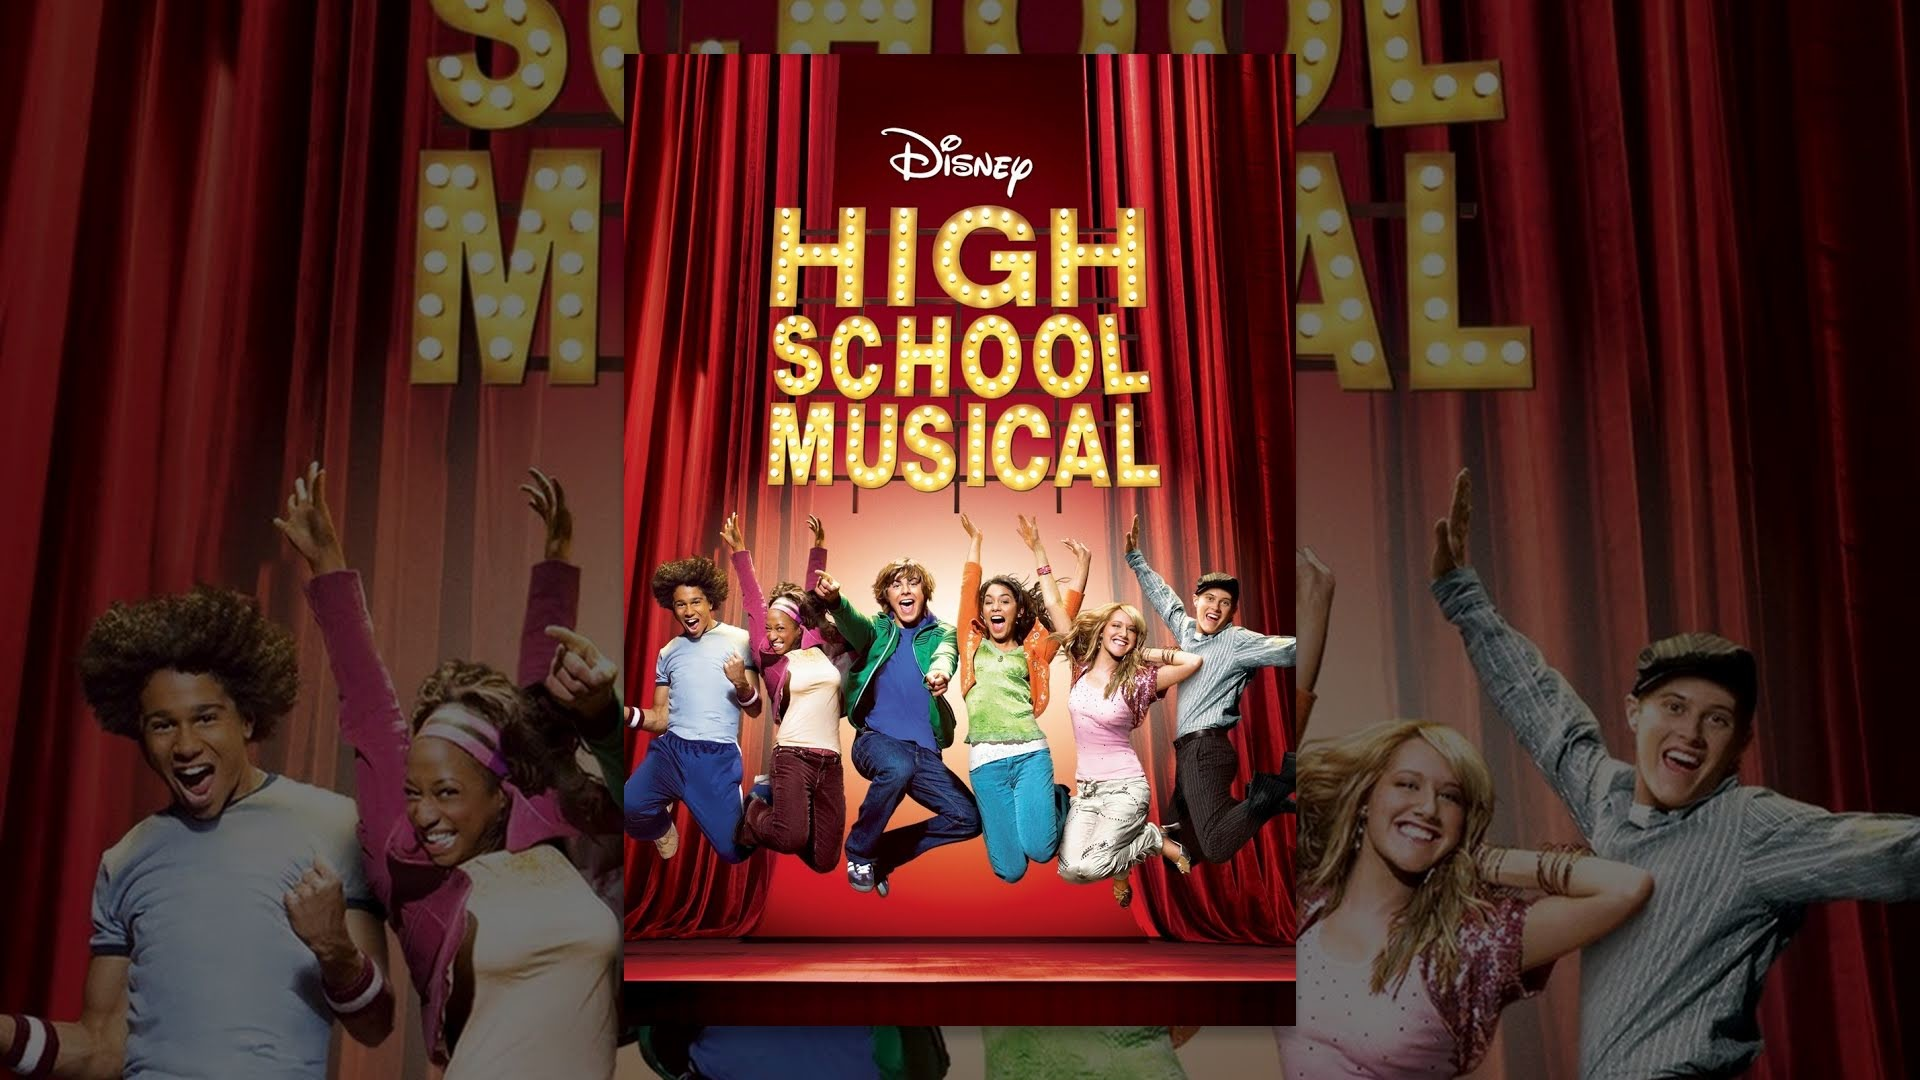 all about high school musical online full episodes of season 1 yidio